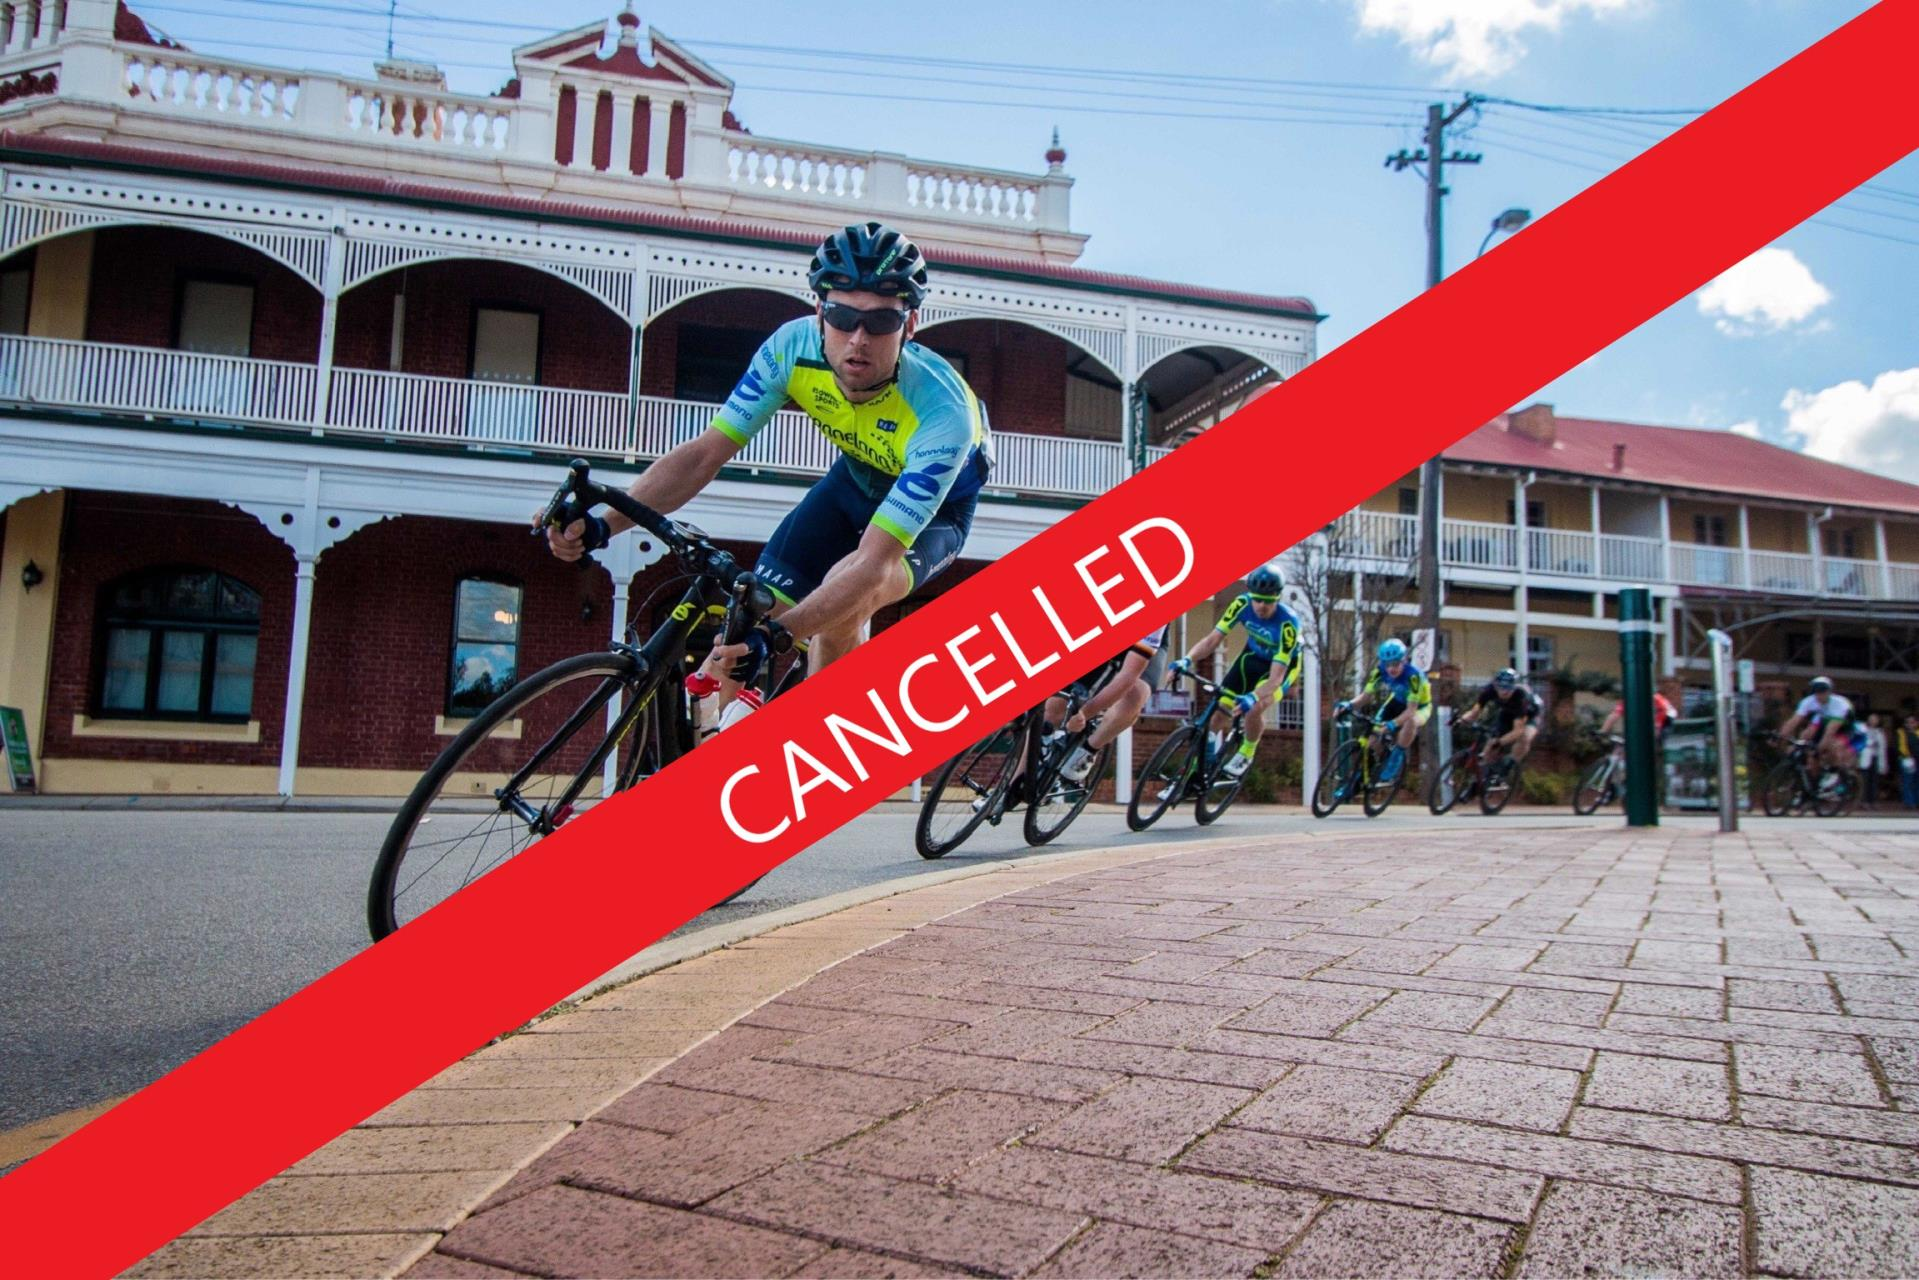 EVENT CANCELLED - Festival of Cycling